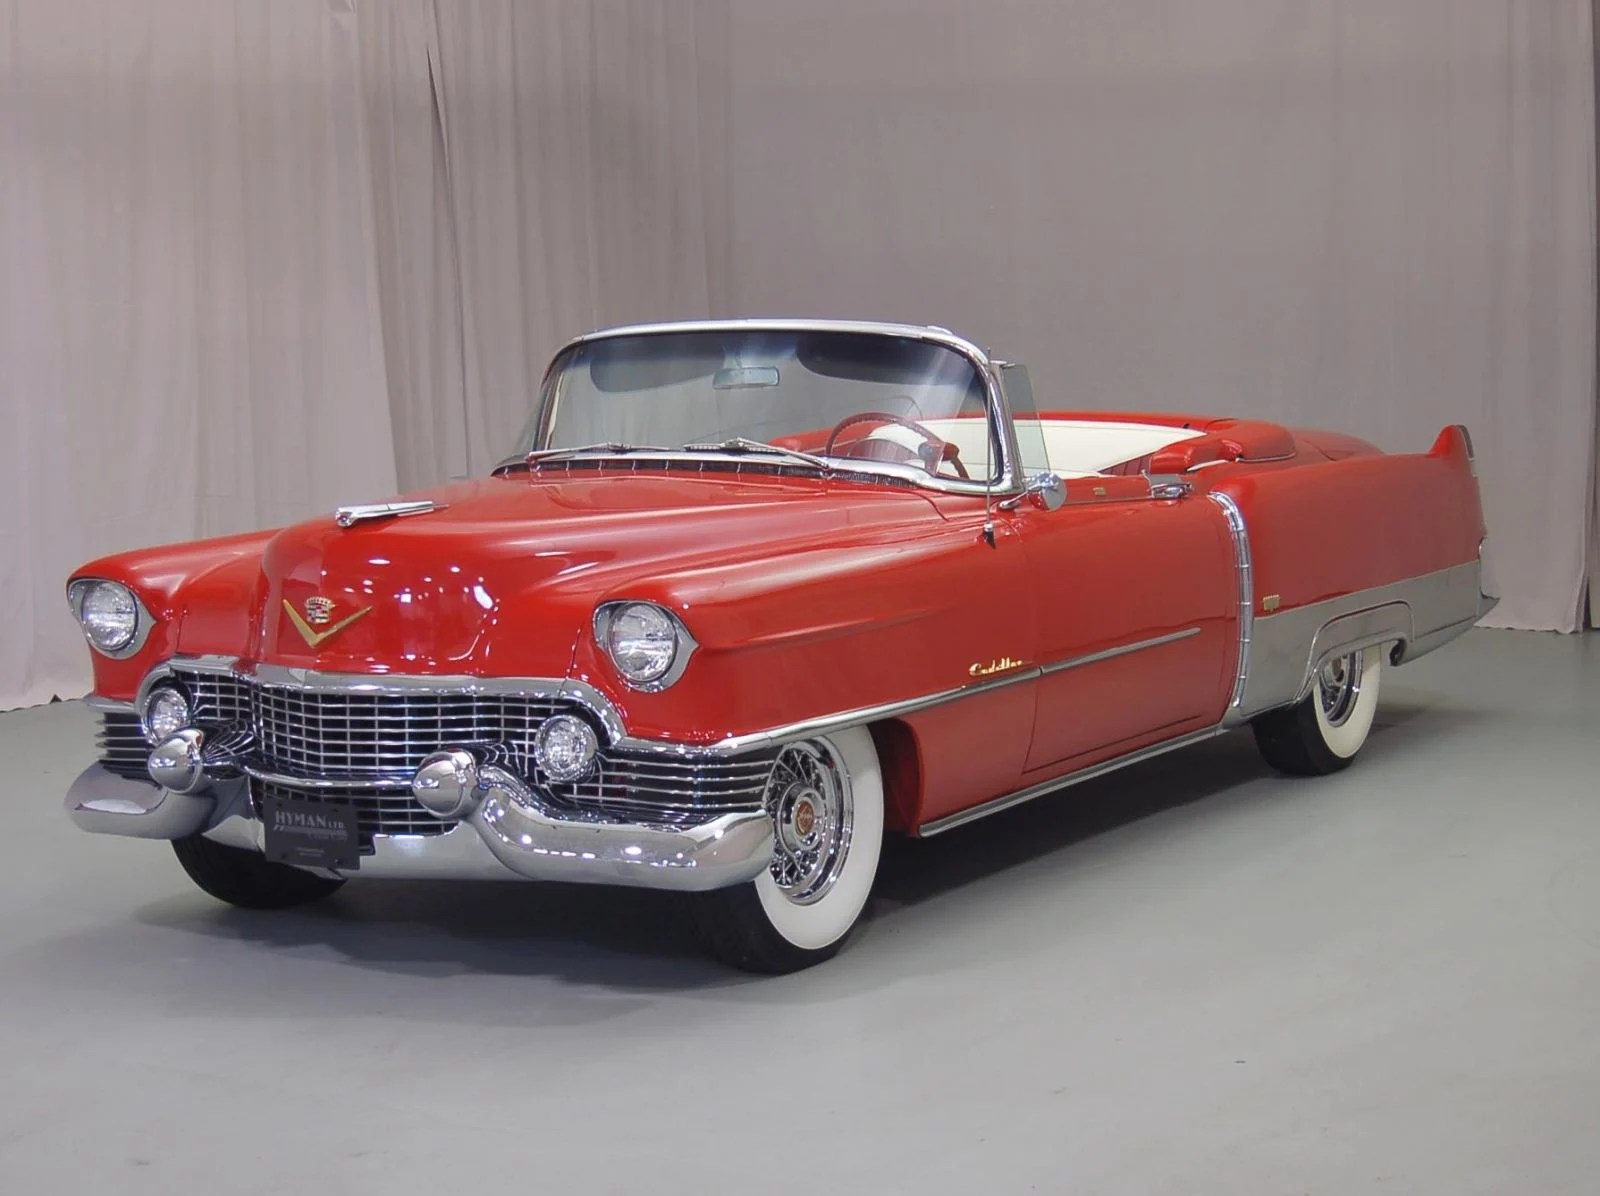 1954 Cadillac Eldorado   Hyman Ltd  Classic Cars 1954 Cadillac Eldorado Classic Car For Sale   Buy 1954 Cadillac Eldorado at  Hyman LTD